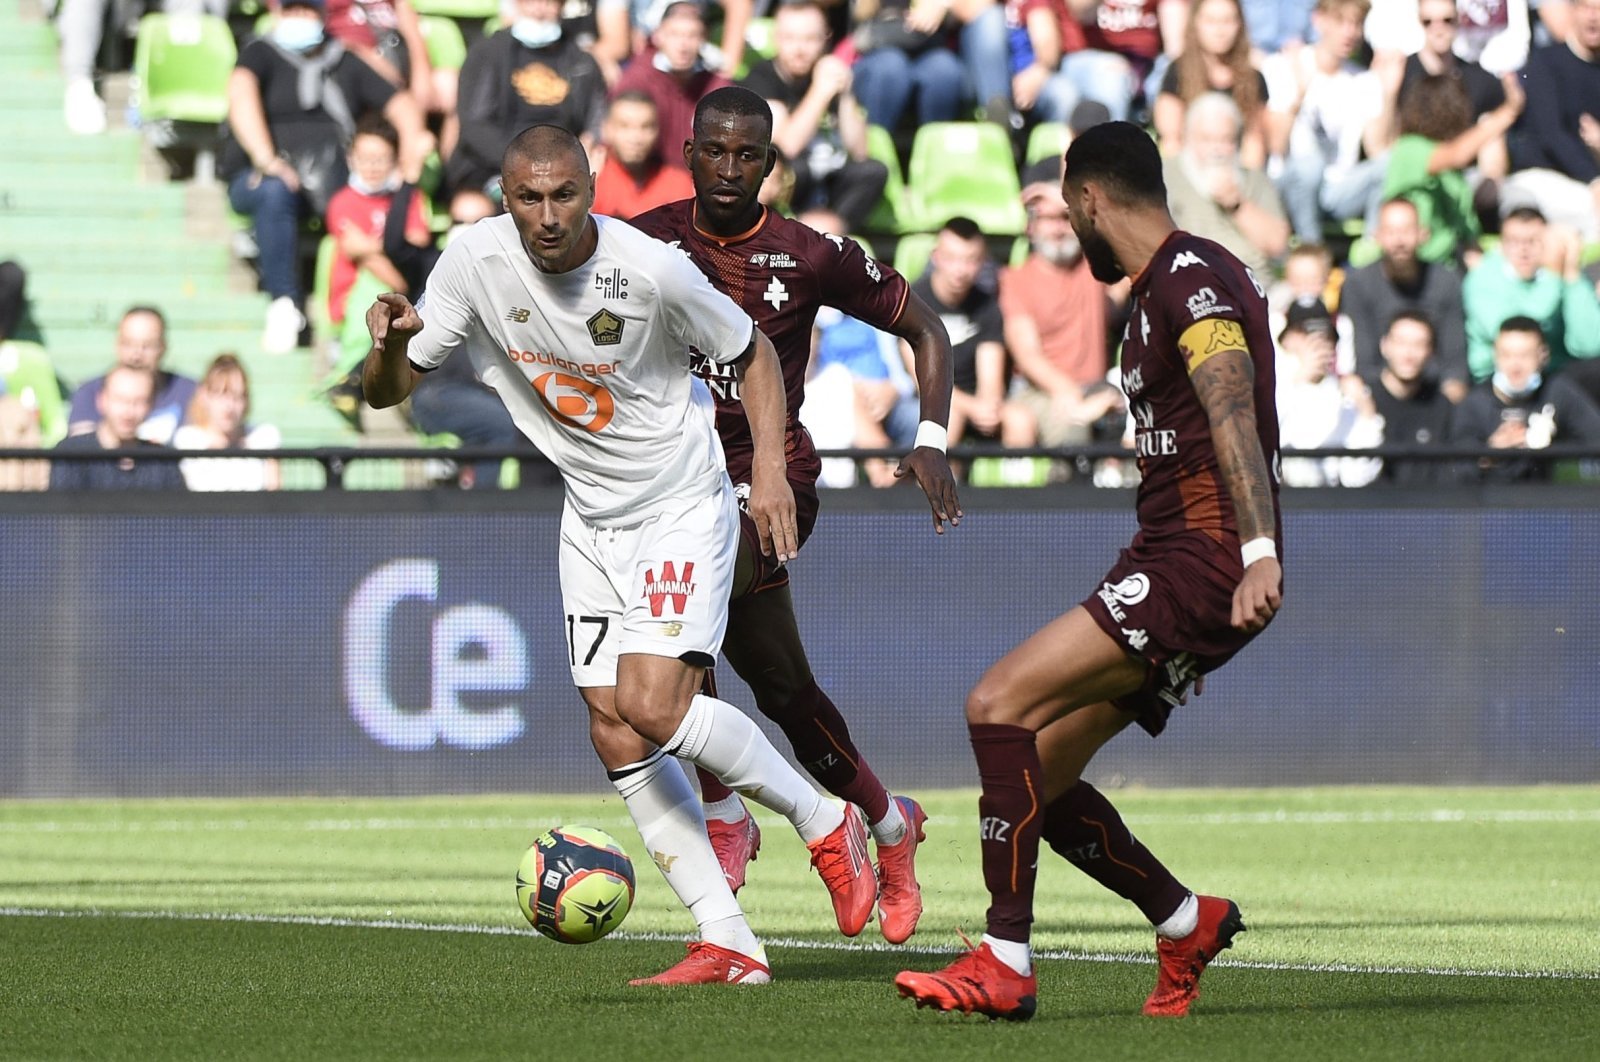 Lille's Turkish forward Burak Yılmaz (L) fights for the ball with Metz's defender Boubakar Kouyate (C) and Dylan Bronn (R) during the French L1 match at Stade Saint-Symphorien in Longeville-les-Metz, northern France, Aug. 8, 2021. (AFP Photo)